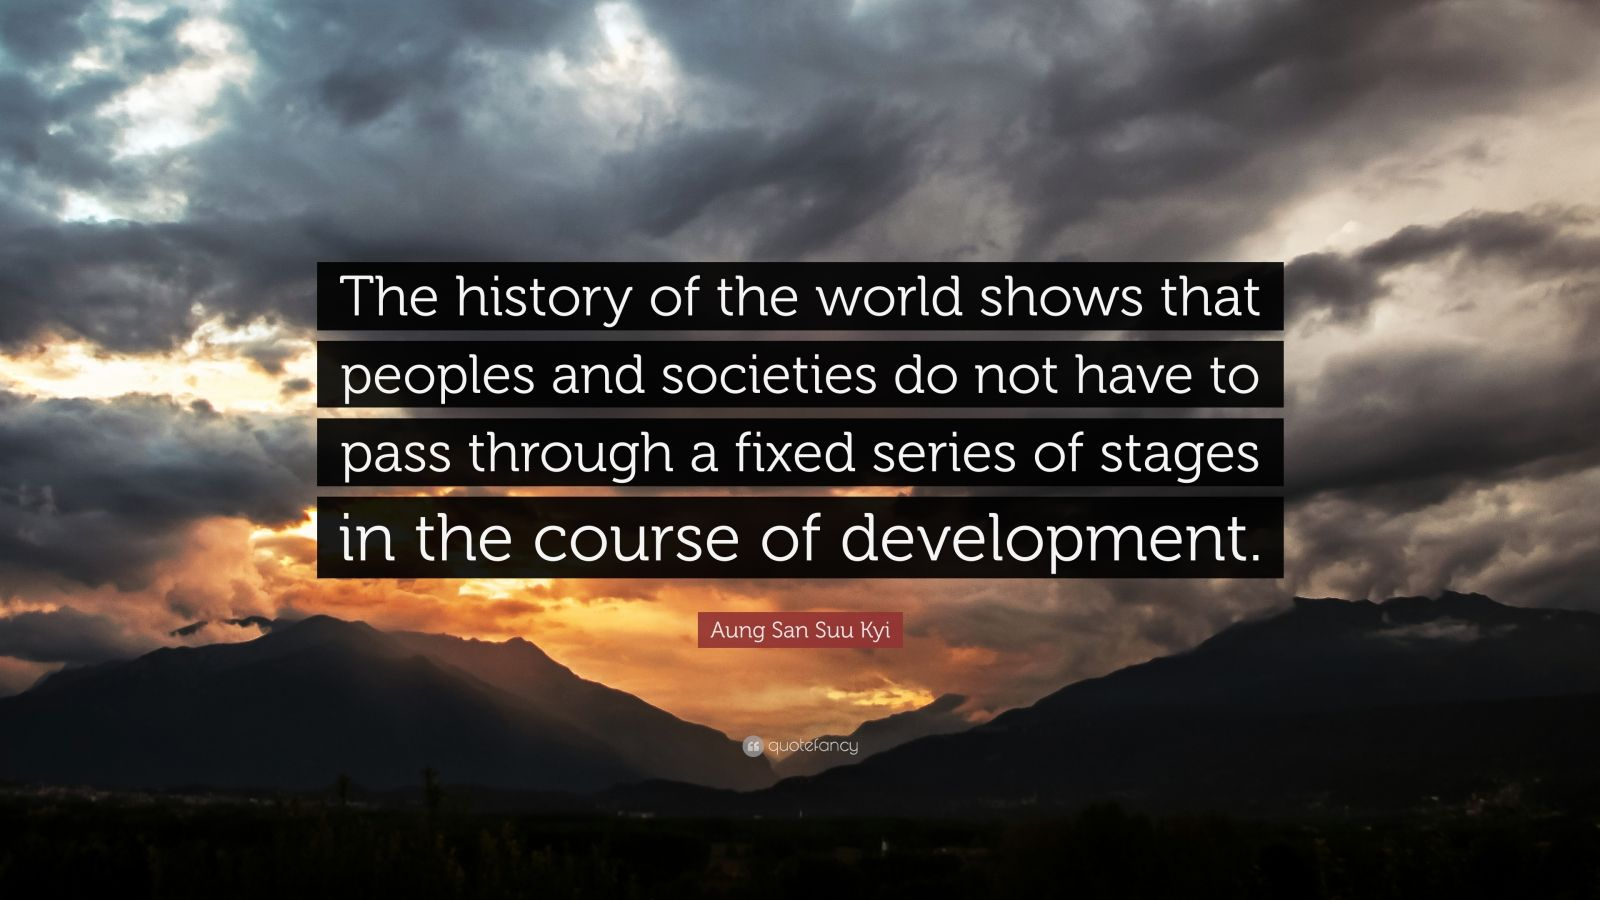 """Aung San Suu Kyi Quote: """"The history of the world shows that peoples and societies do not have to pass through a fixed series of stages in the course of development."""""""